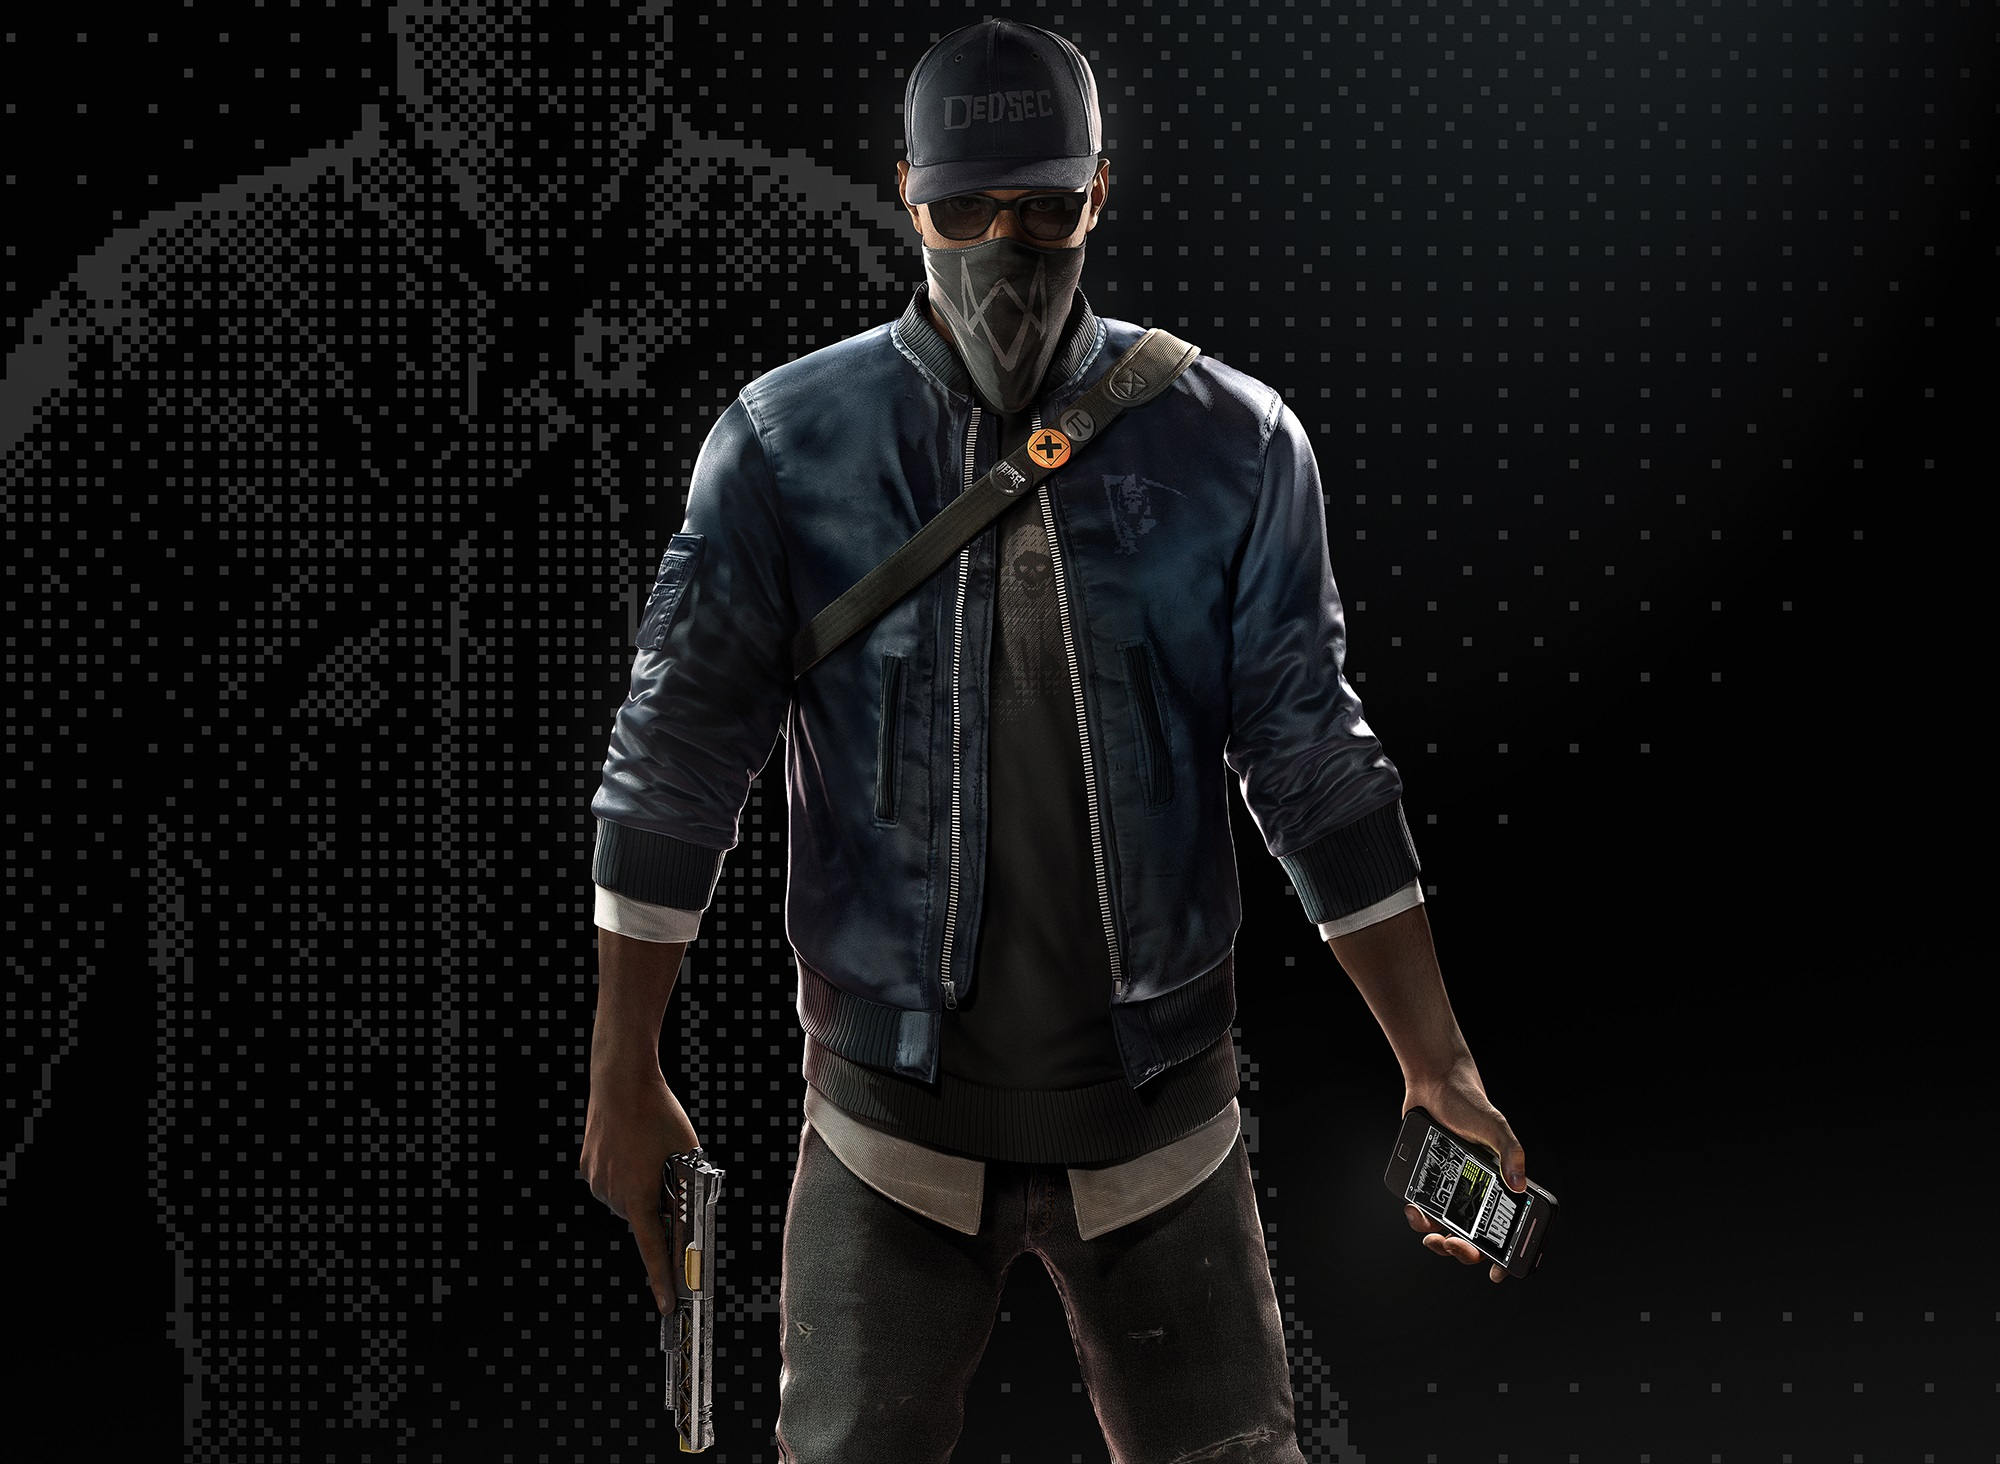 Diablo Hd Wallpaper Watch Dogs 2 Wallpapers Pictures Images